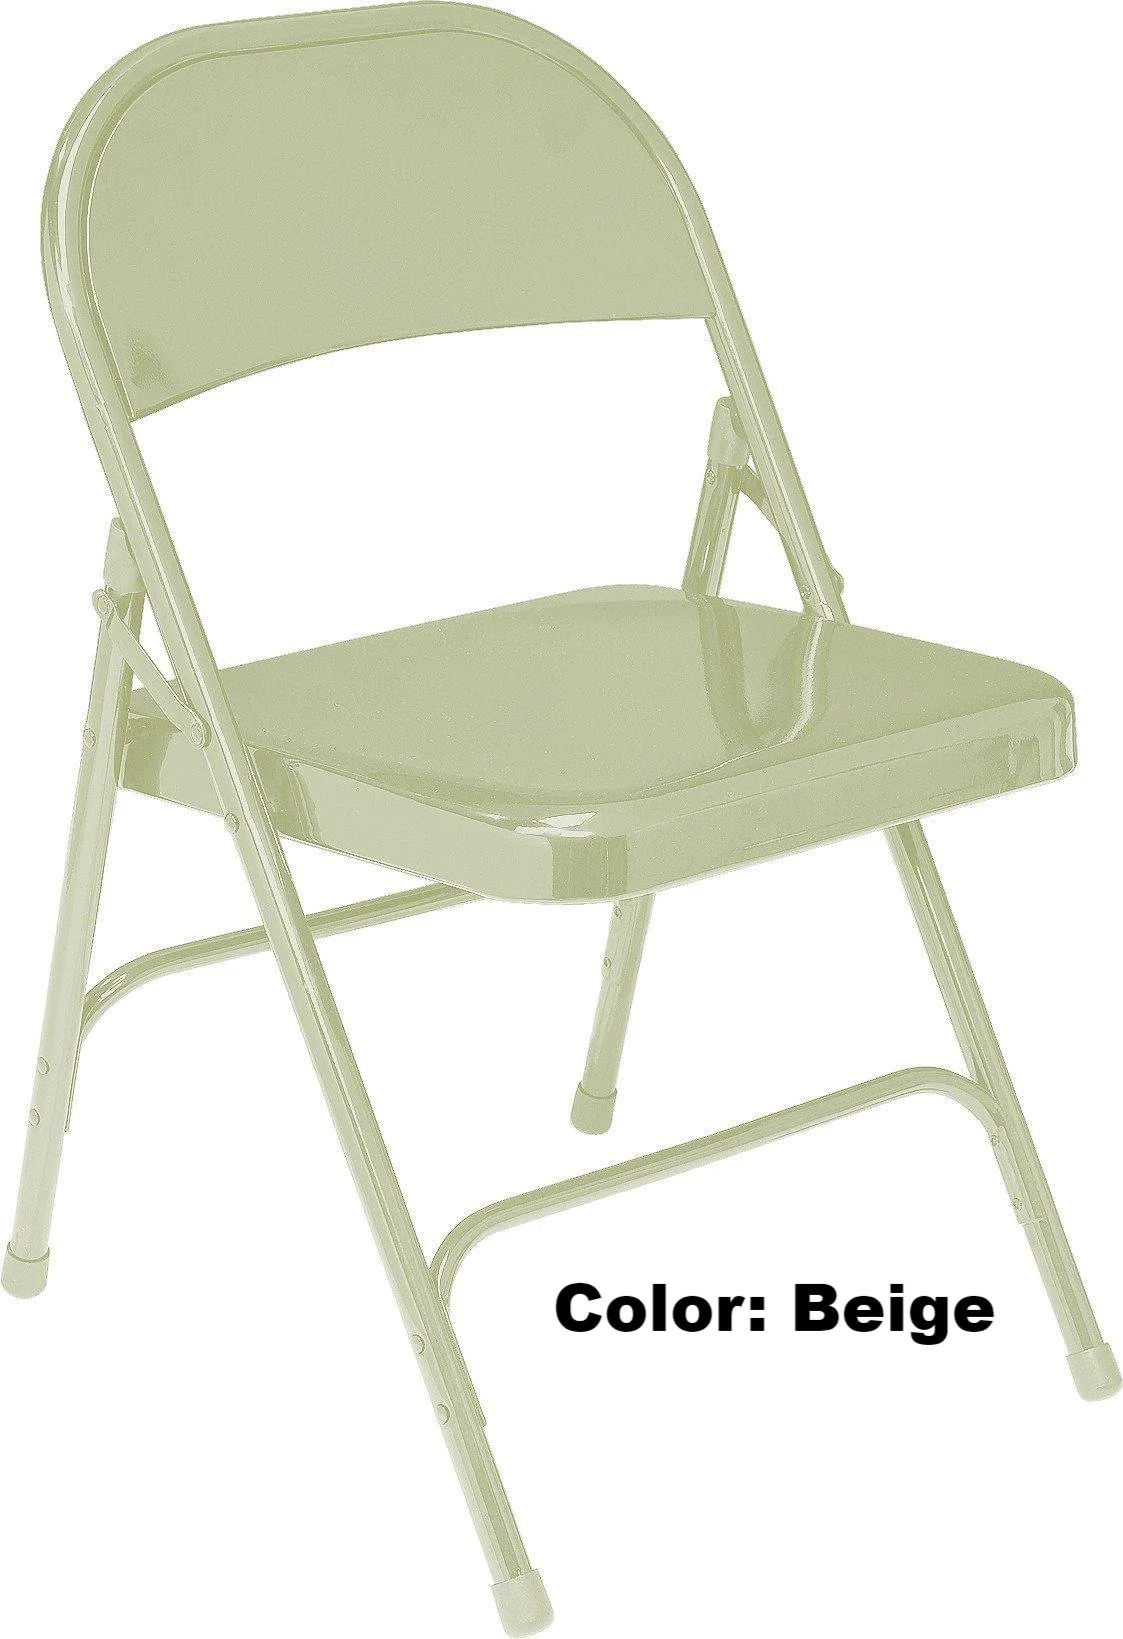 standard banquet chairs pello ikea chair model 50 series all steel folding podiums